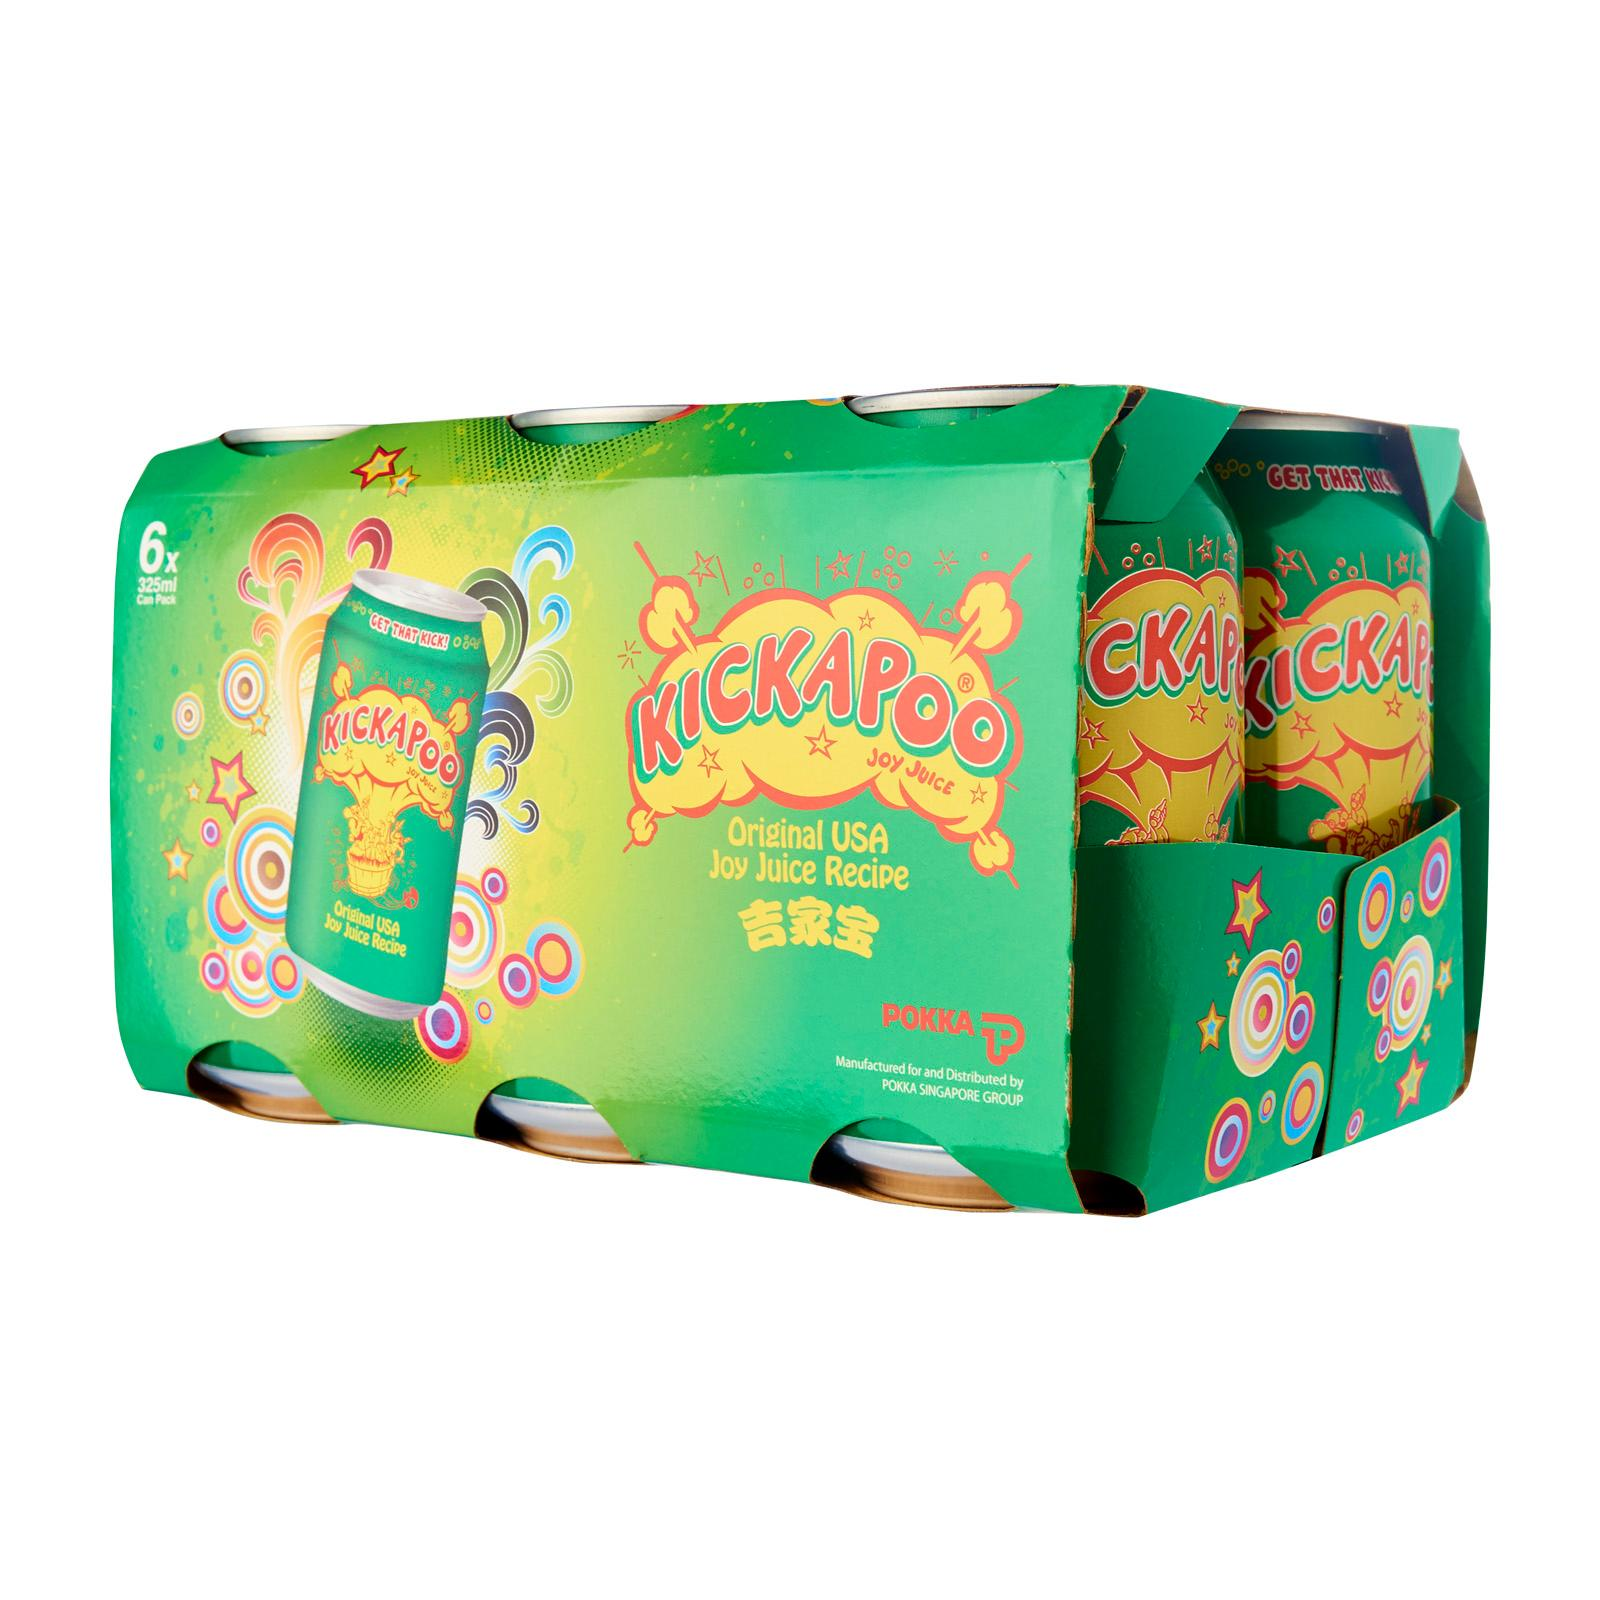 Kickapoo Joy Juice 6 x 325 ml